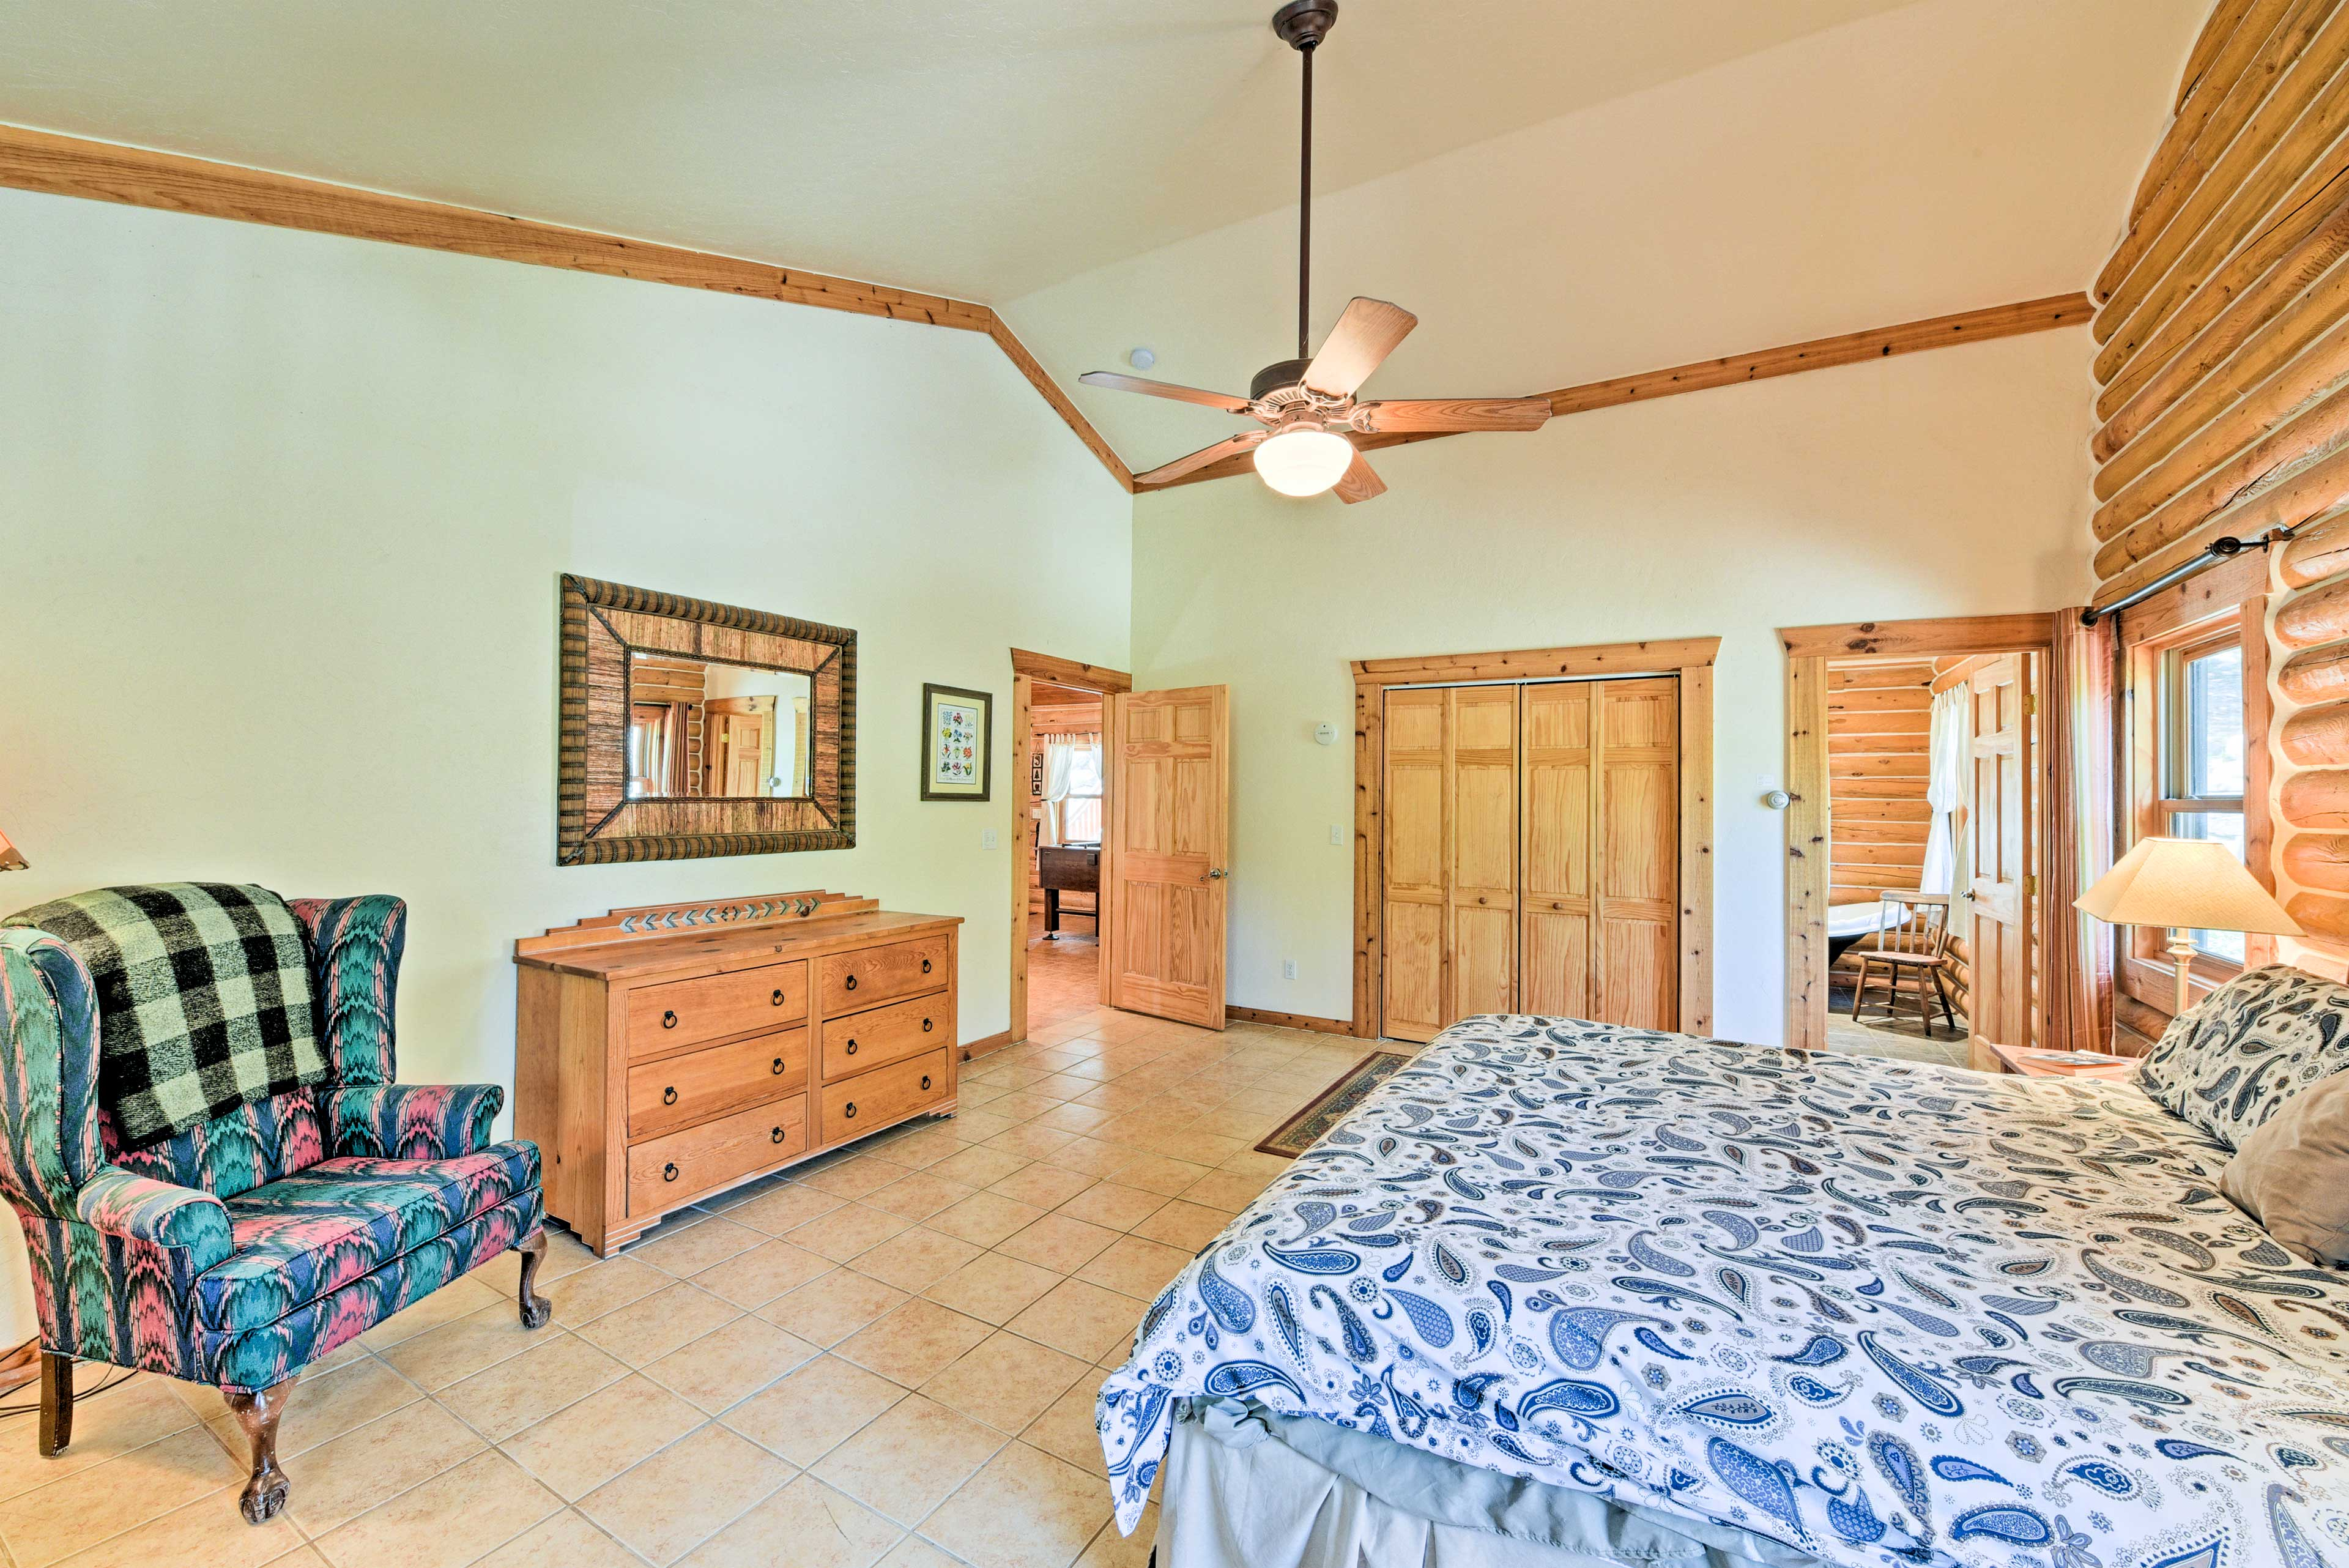 Those sharing this room will enjoy deck access and an en-suite bathroom.